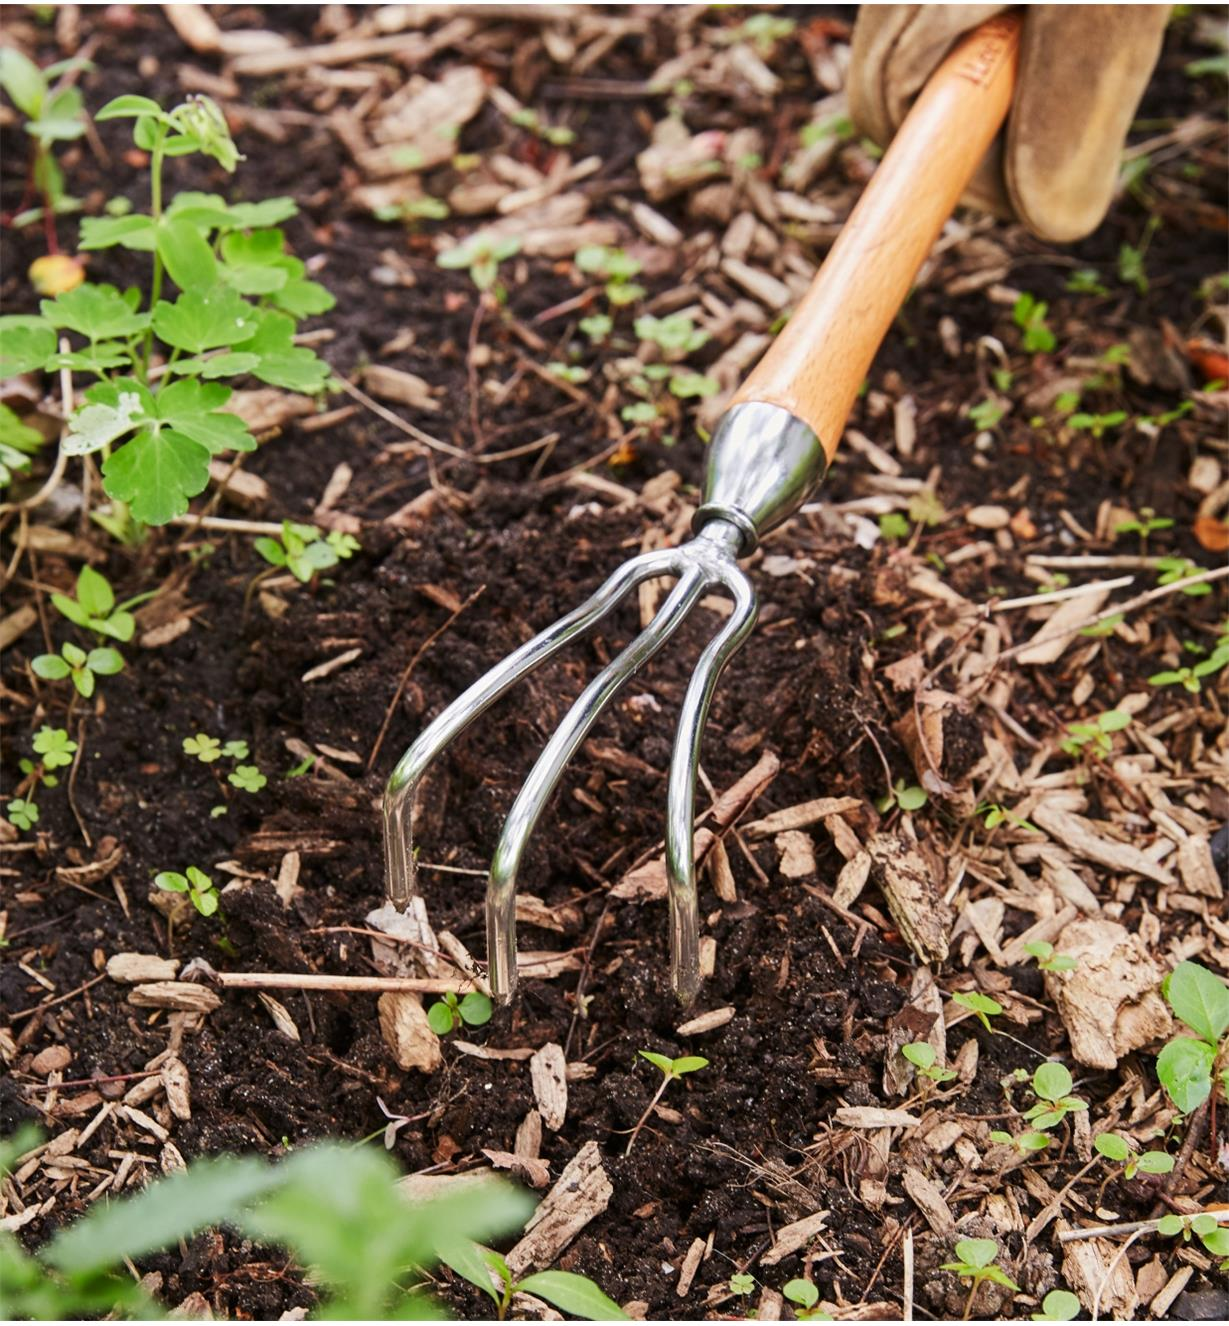 Weeding in a garden with the Mid-Length Three-Prong Cultivator